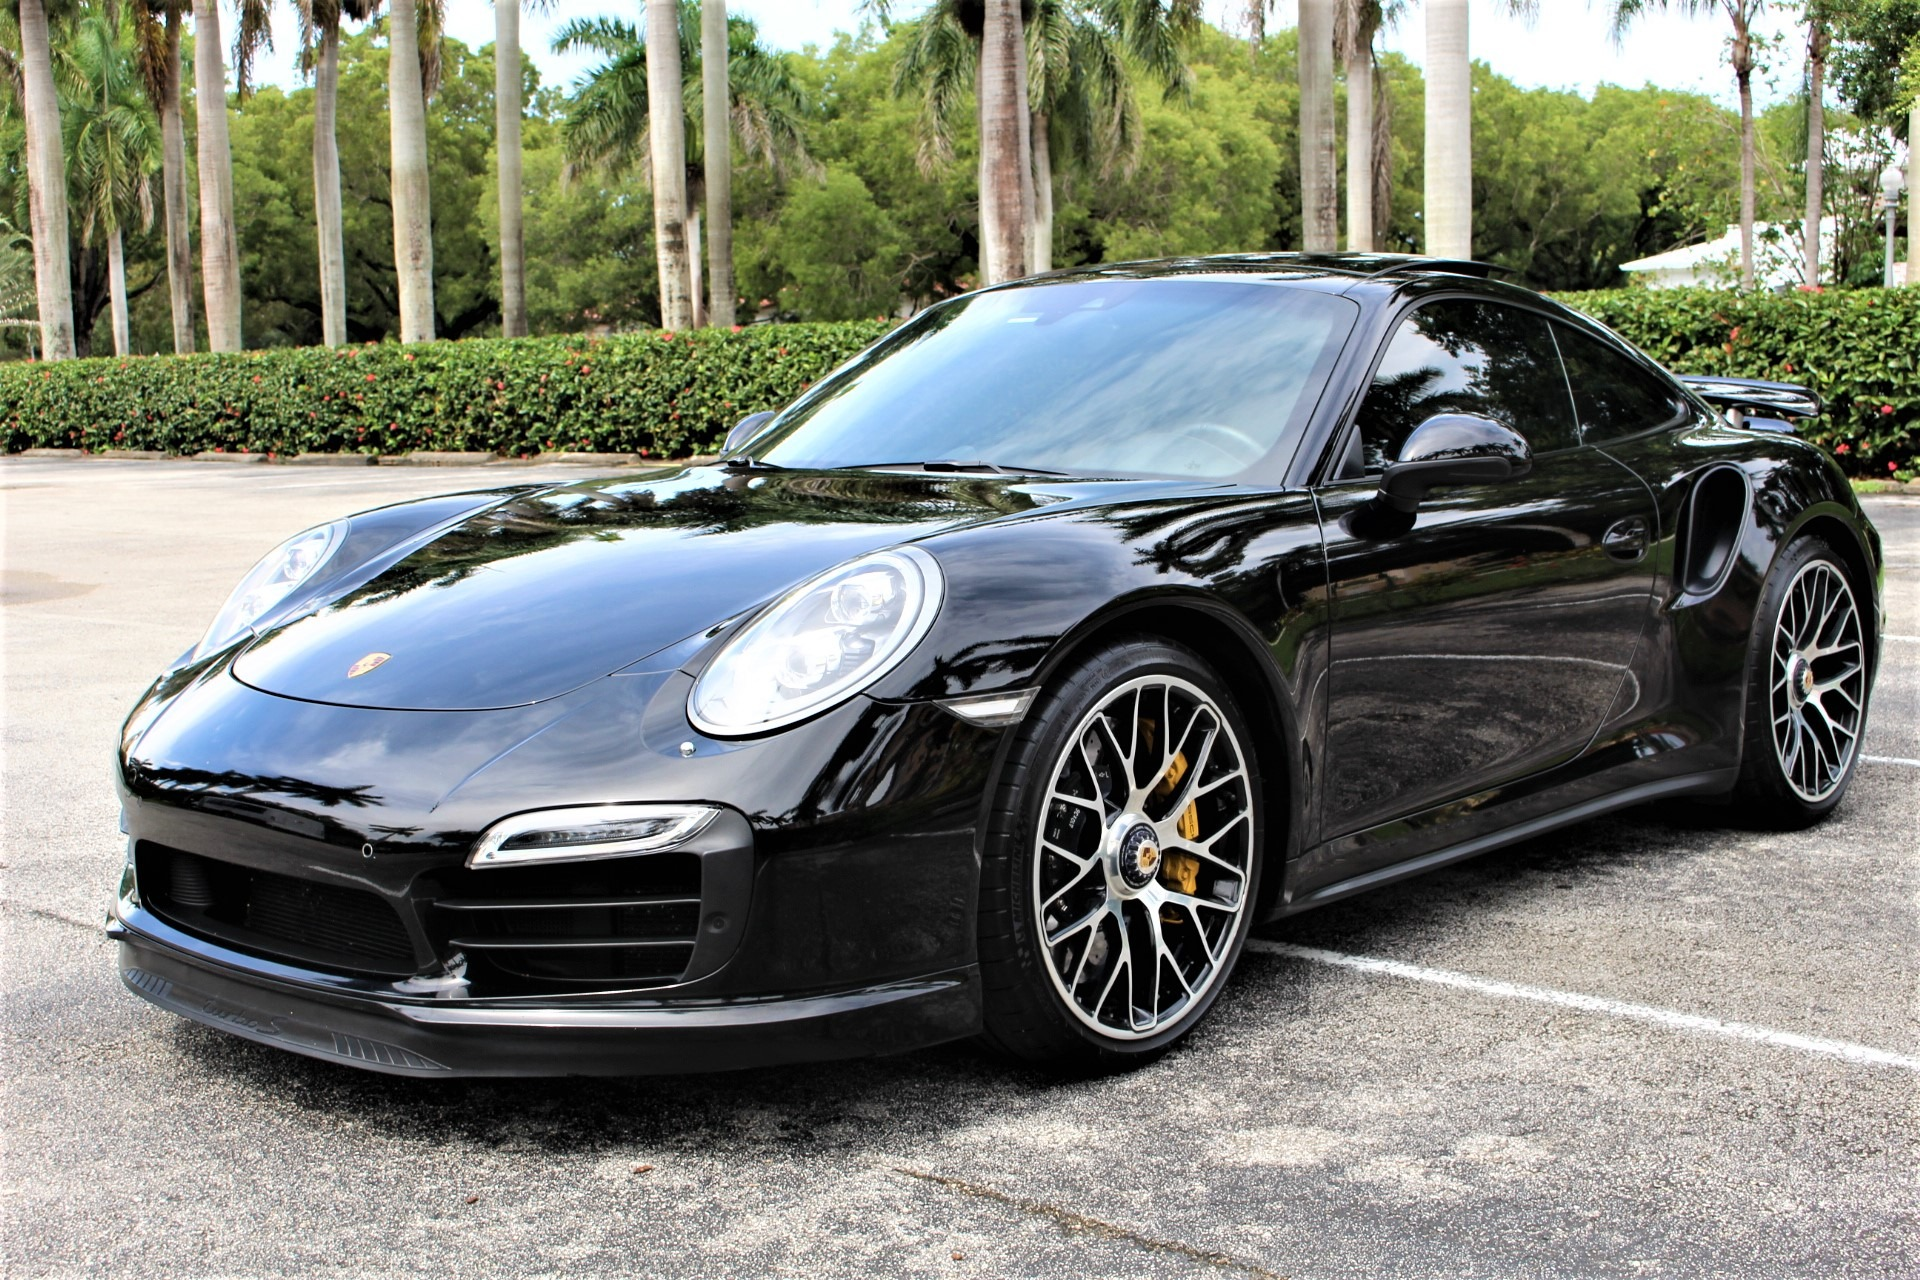 Used 2014 Porsche 911 Turbo S for sale $126,850 at The Gables Sports Cars in Miami FL 33146 4